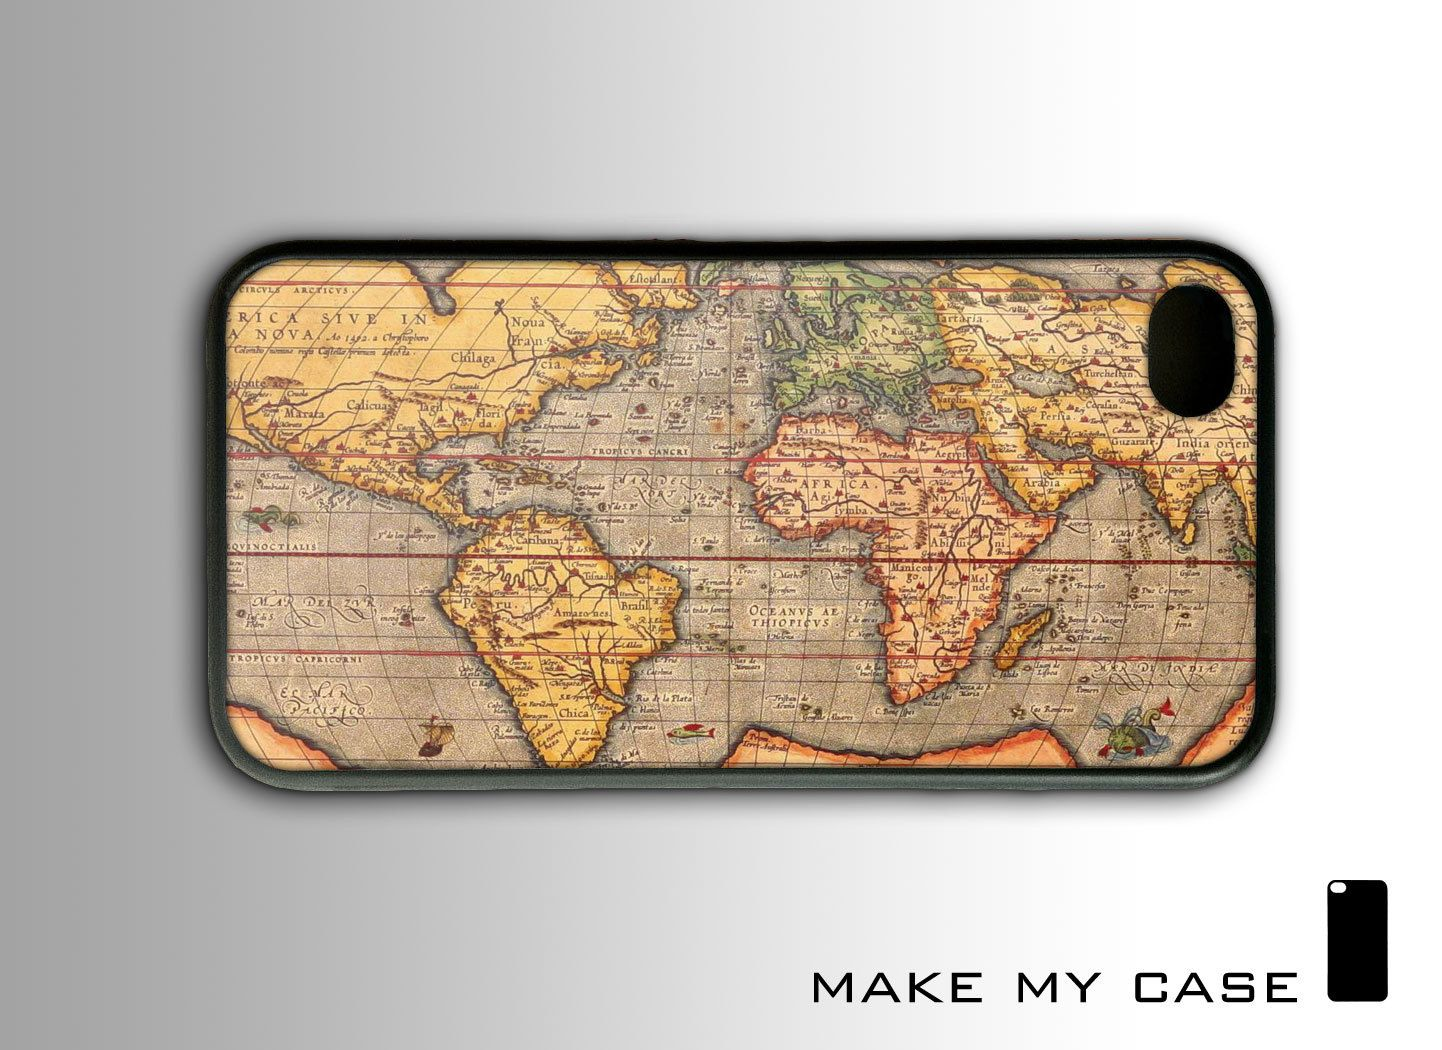 Vintage old world map iphone 4s case 1699 via etsy i want vintage old world map iphone 4s case 1699 via etsy i want gumiabroncs Images